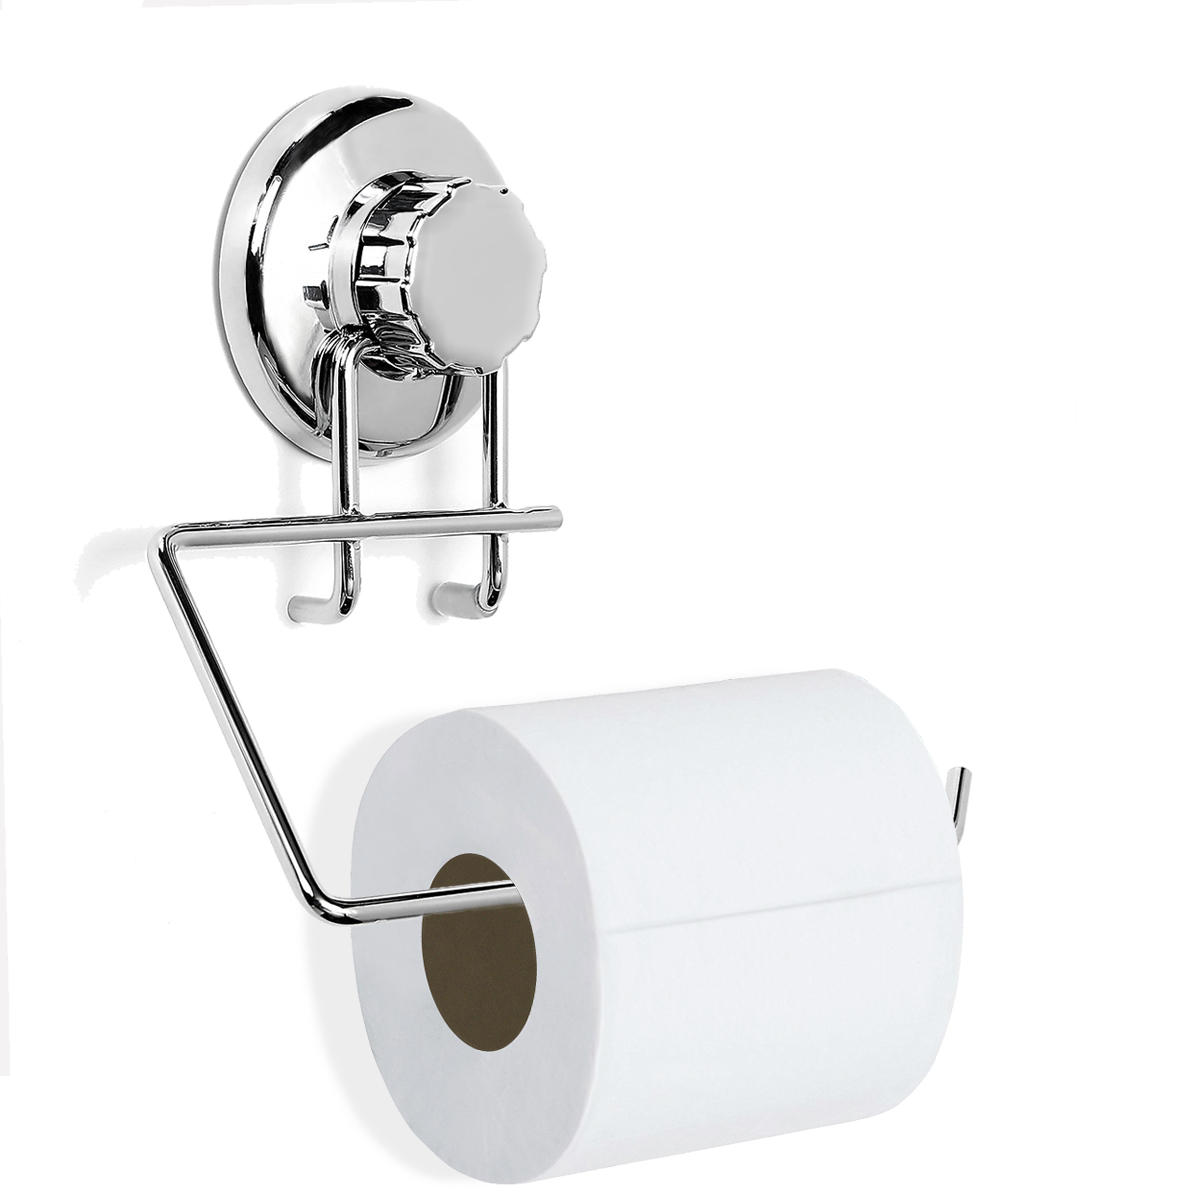 90447d7387aab powerful no-drilling vacuum suction cup toilet paper holder toilet ...